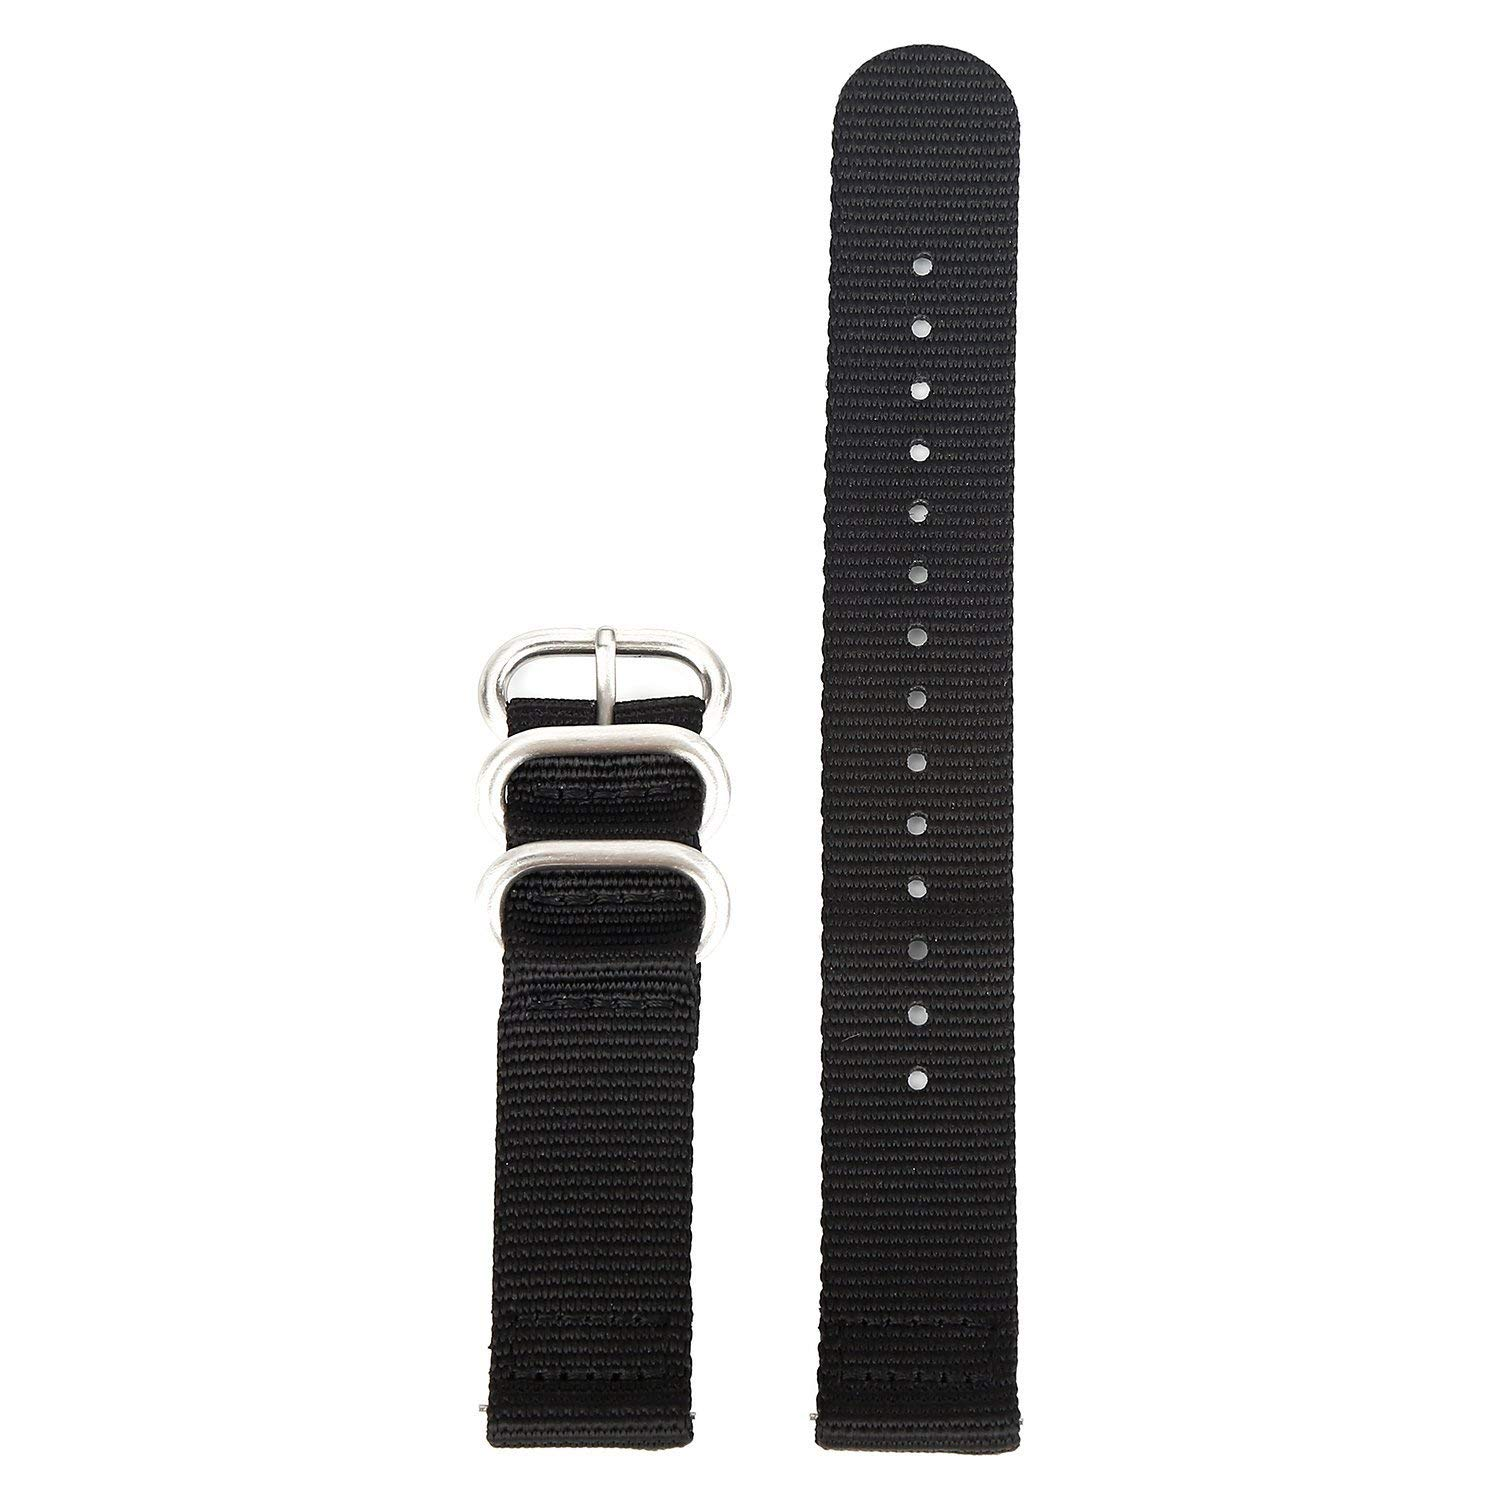 Boonix Easy Replacement Watch Bands, Quick-Change Ballistic Nylon Band for Men & Women [18mm Black]